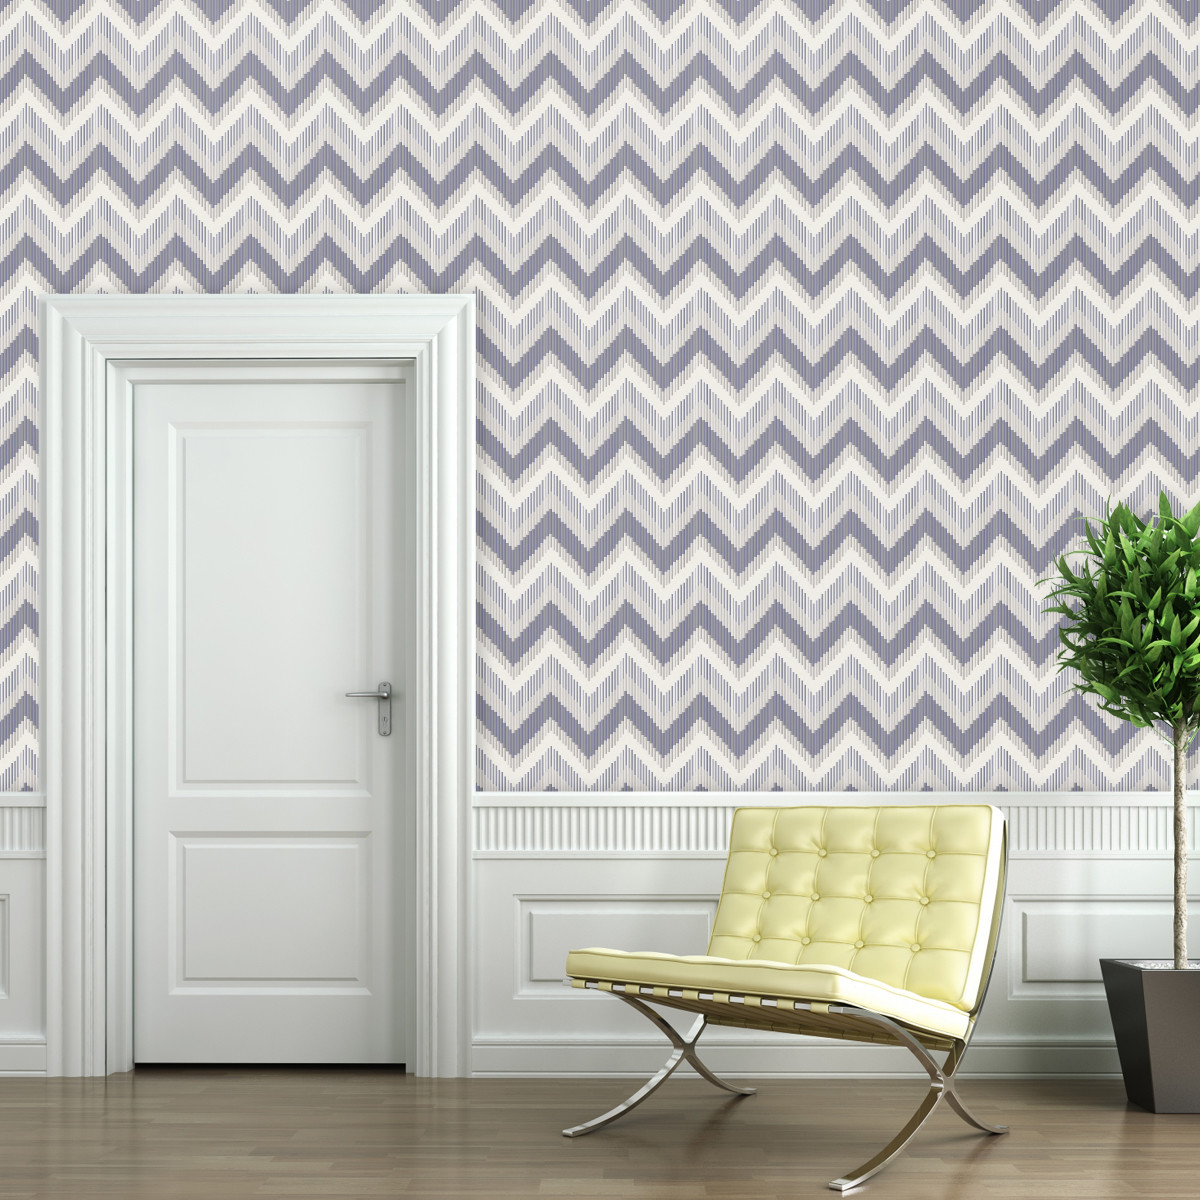 Free download Glass Tile Chevron Panel Wallpaper by Swag Paper